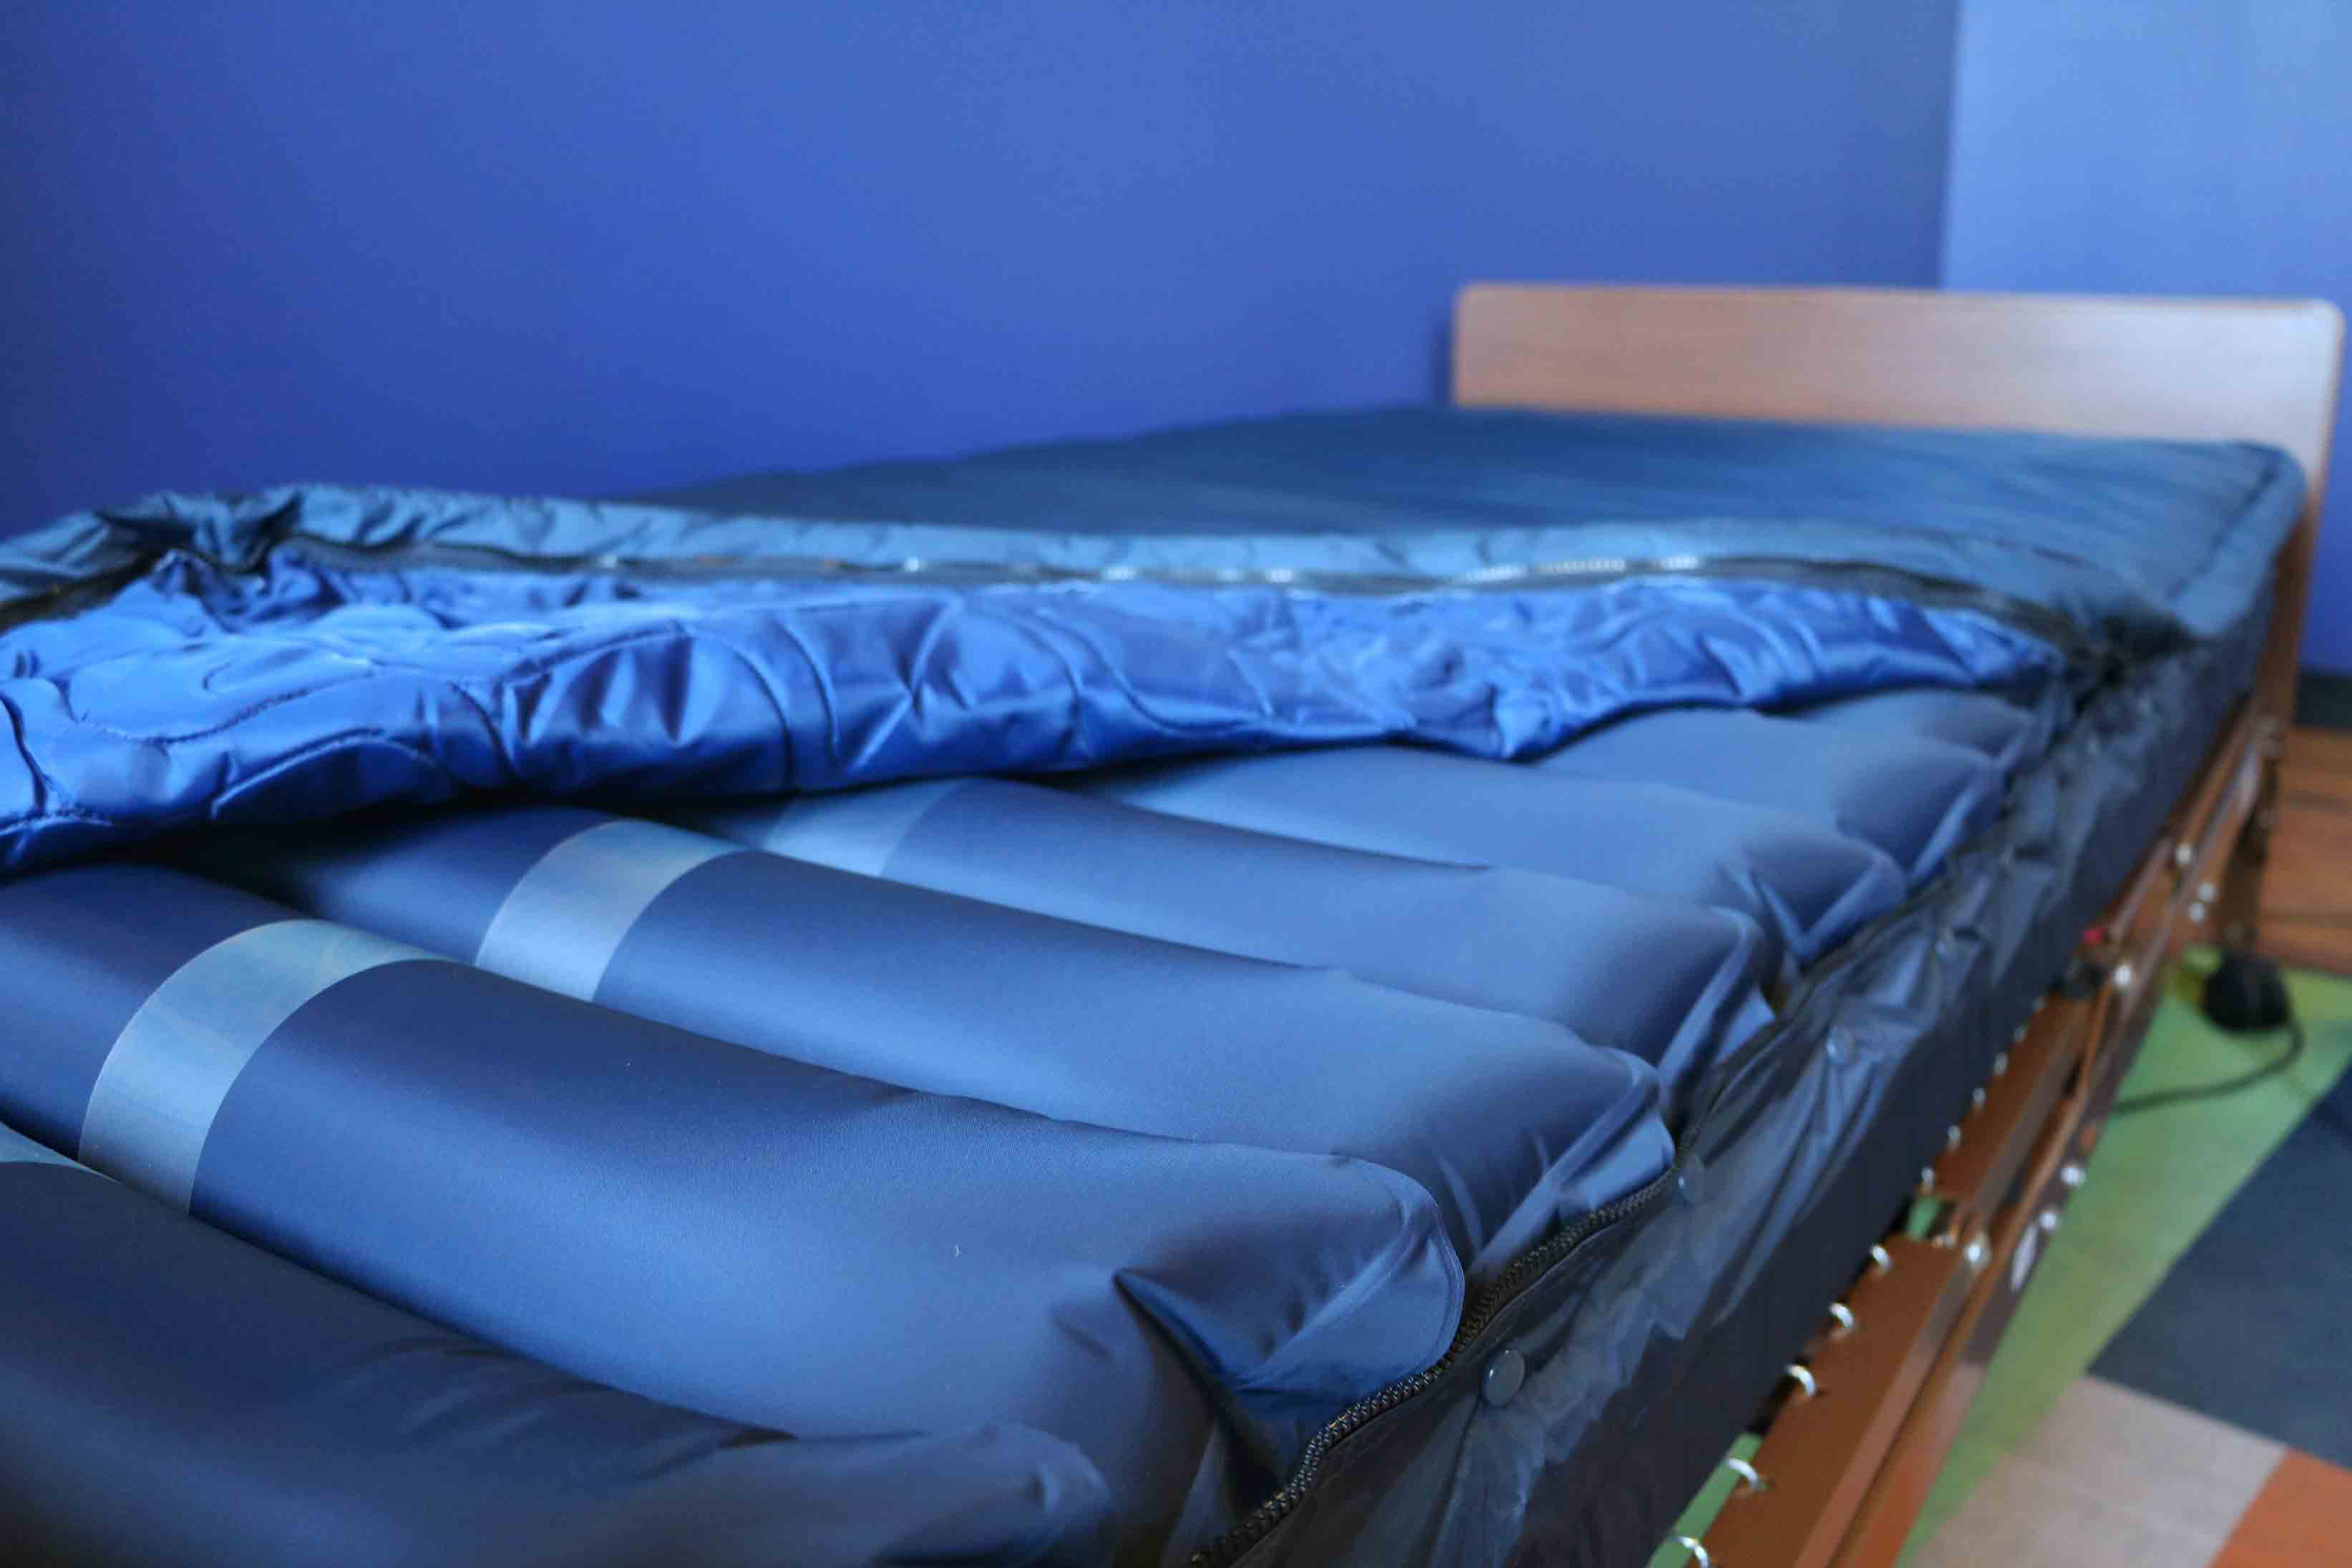 Bed Sore Cushions How A Low Air Loss Mattress Can Help Keep Patients Wound Free